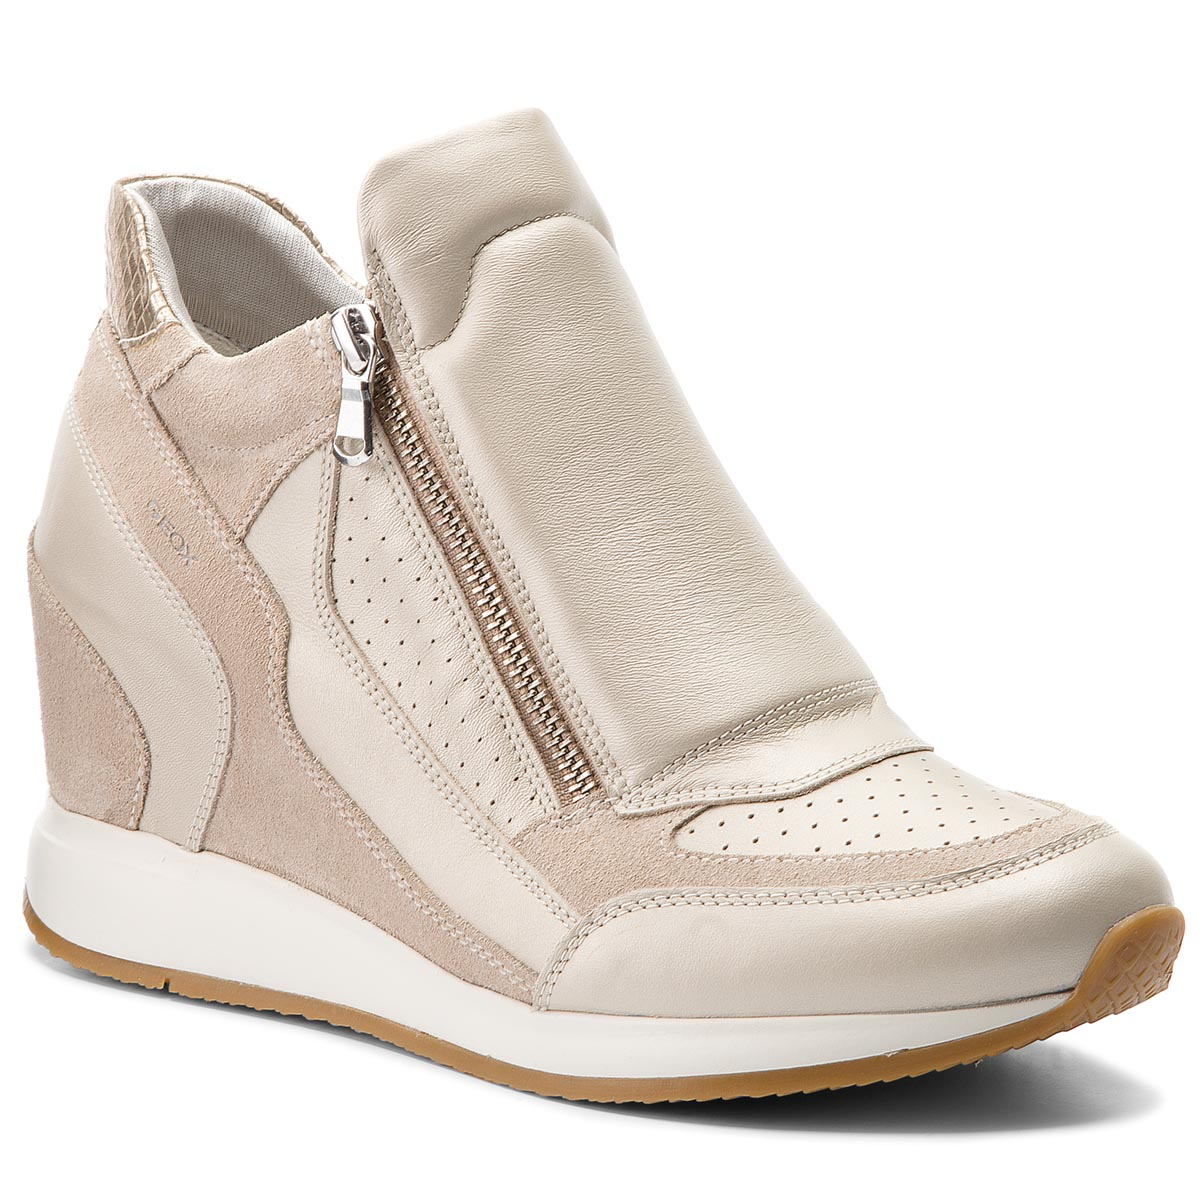 Sneakersy GEOX - D Nydame A D620QA 04422 C2UH6 Platinum/Lt Taupe